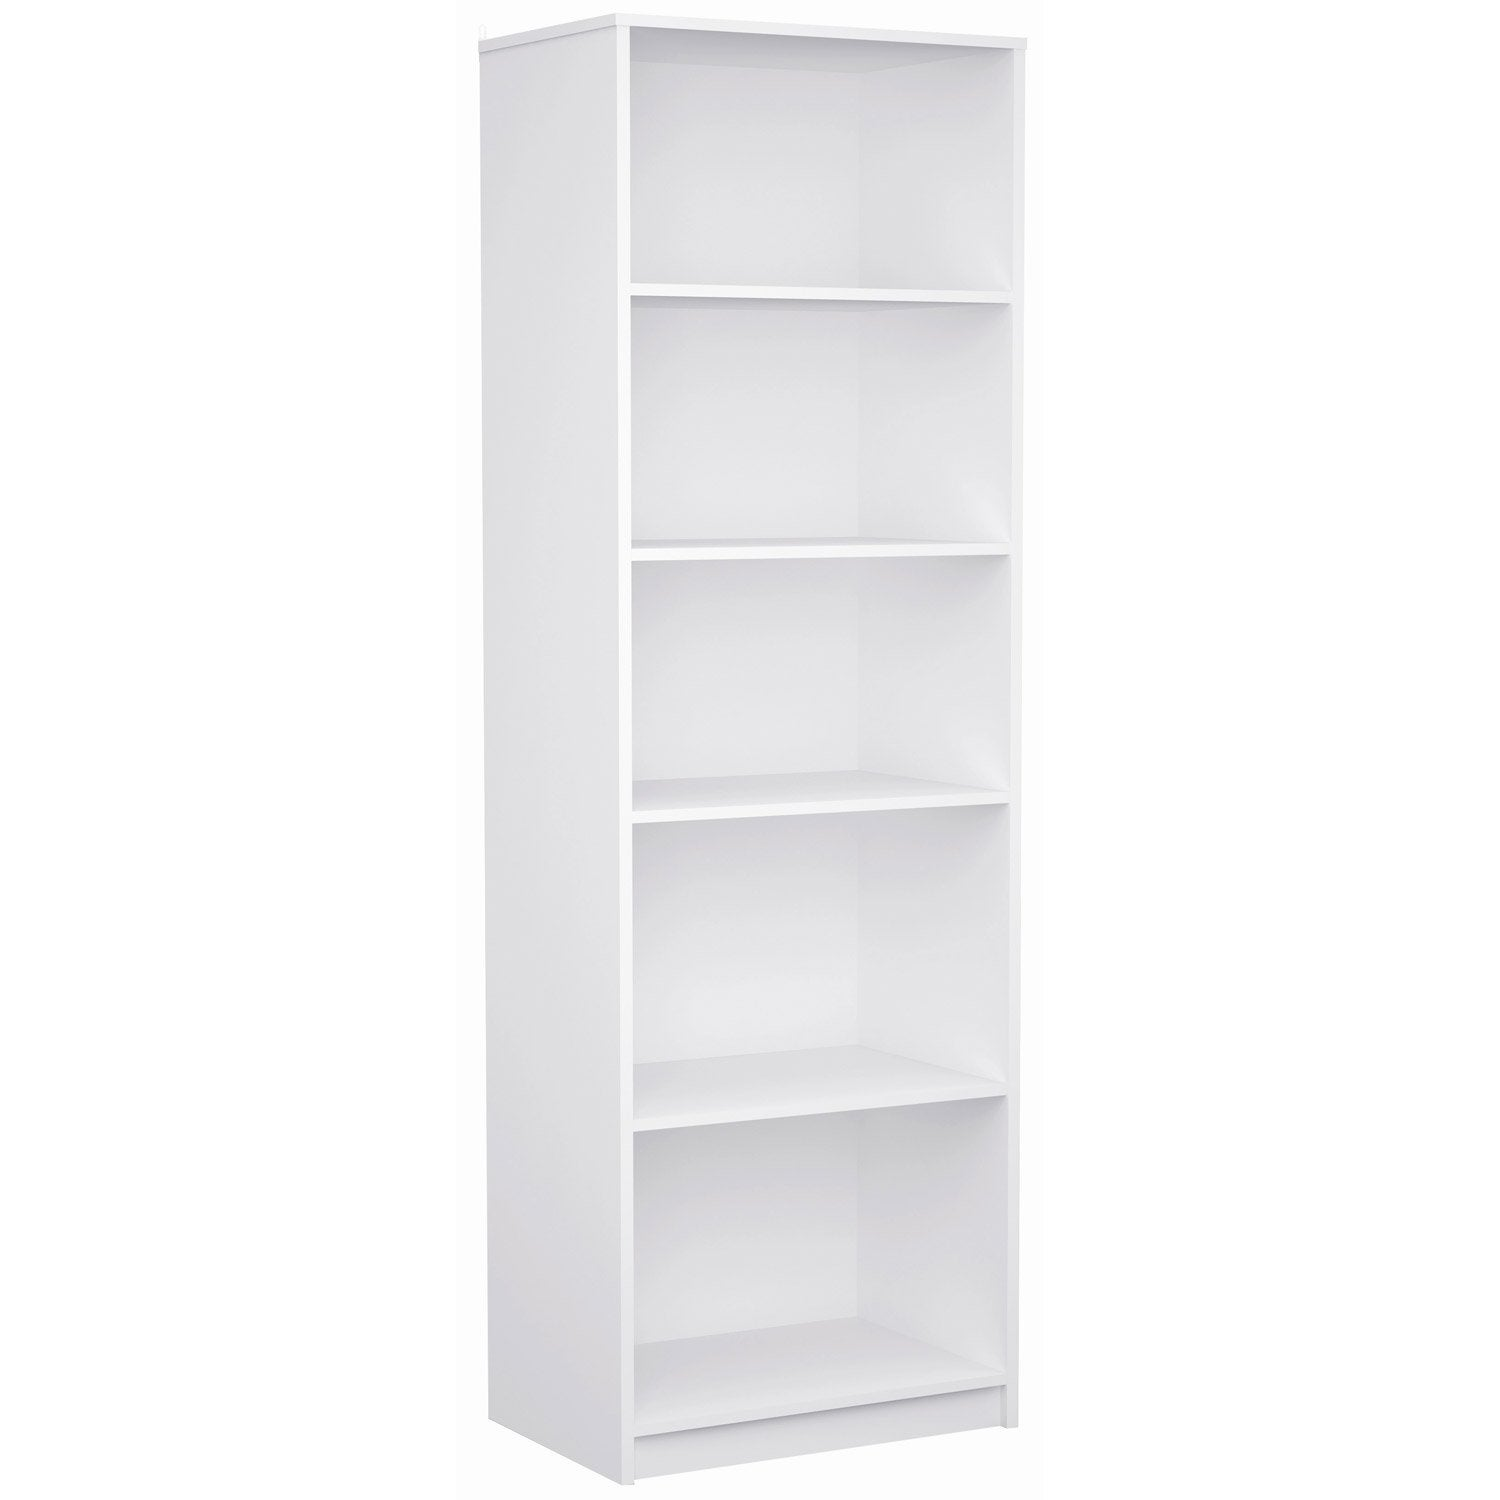 colonne spaceo dressing 61x186x40 cm blanc leroy merlin